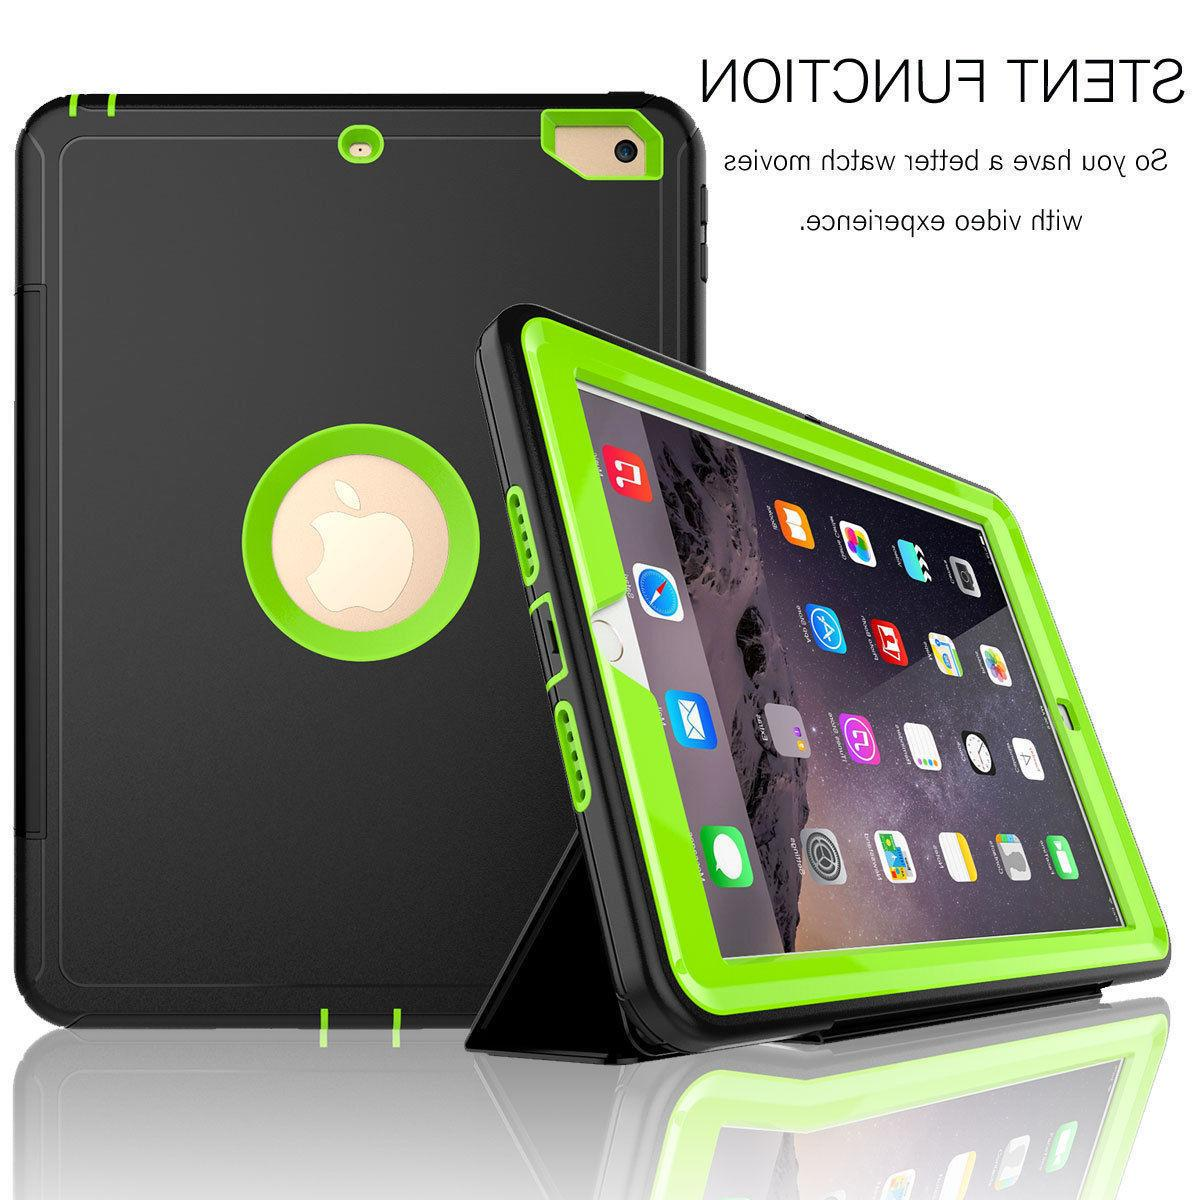 Heavy Duty in 1 Shock Proof PC Case Apple iPad Gen inch 2018